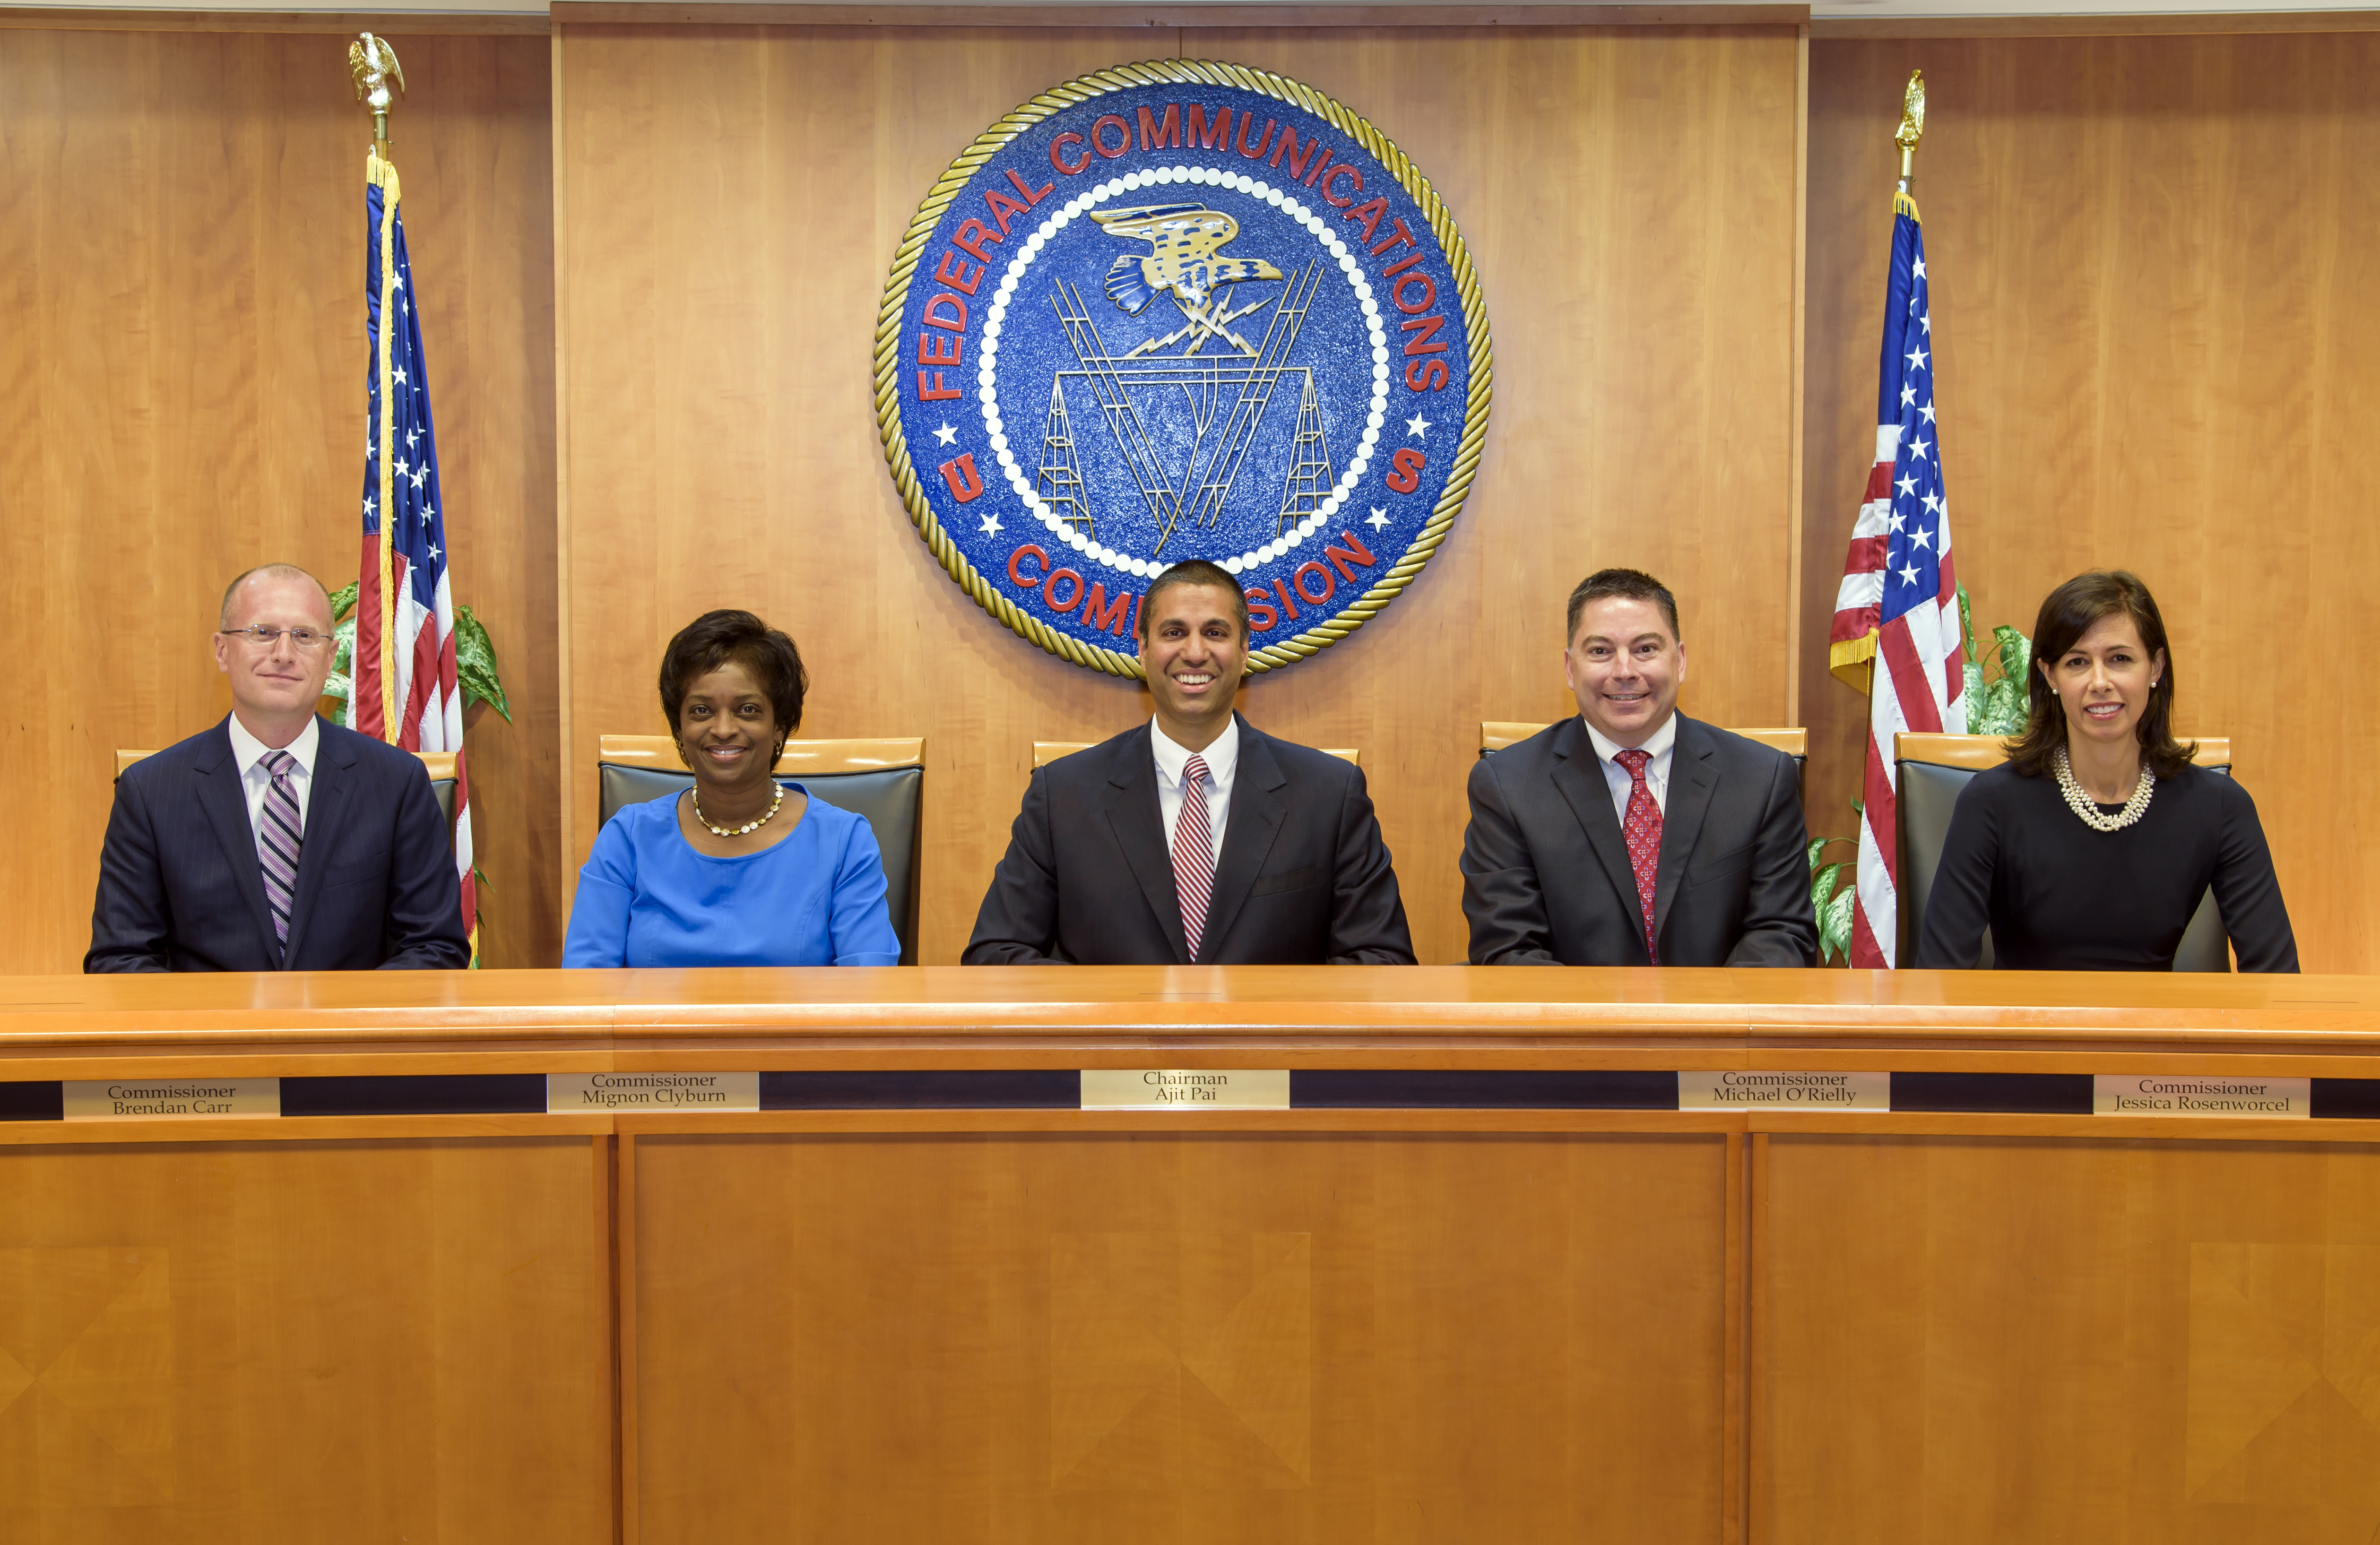 Fcc >> Commissioners Press Photos Federal Communications Commission